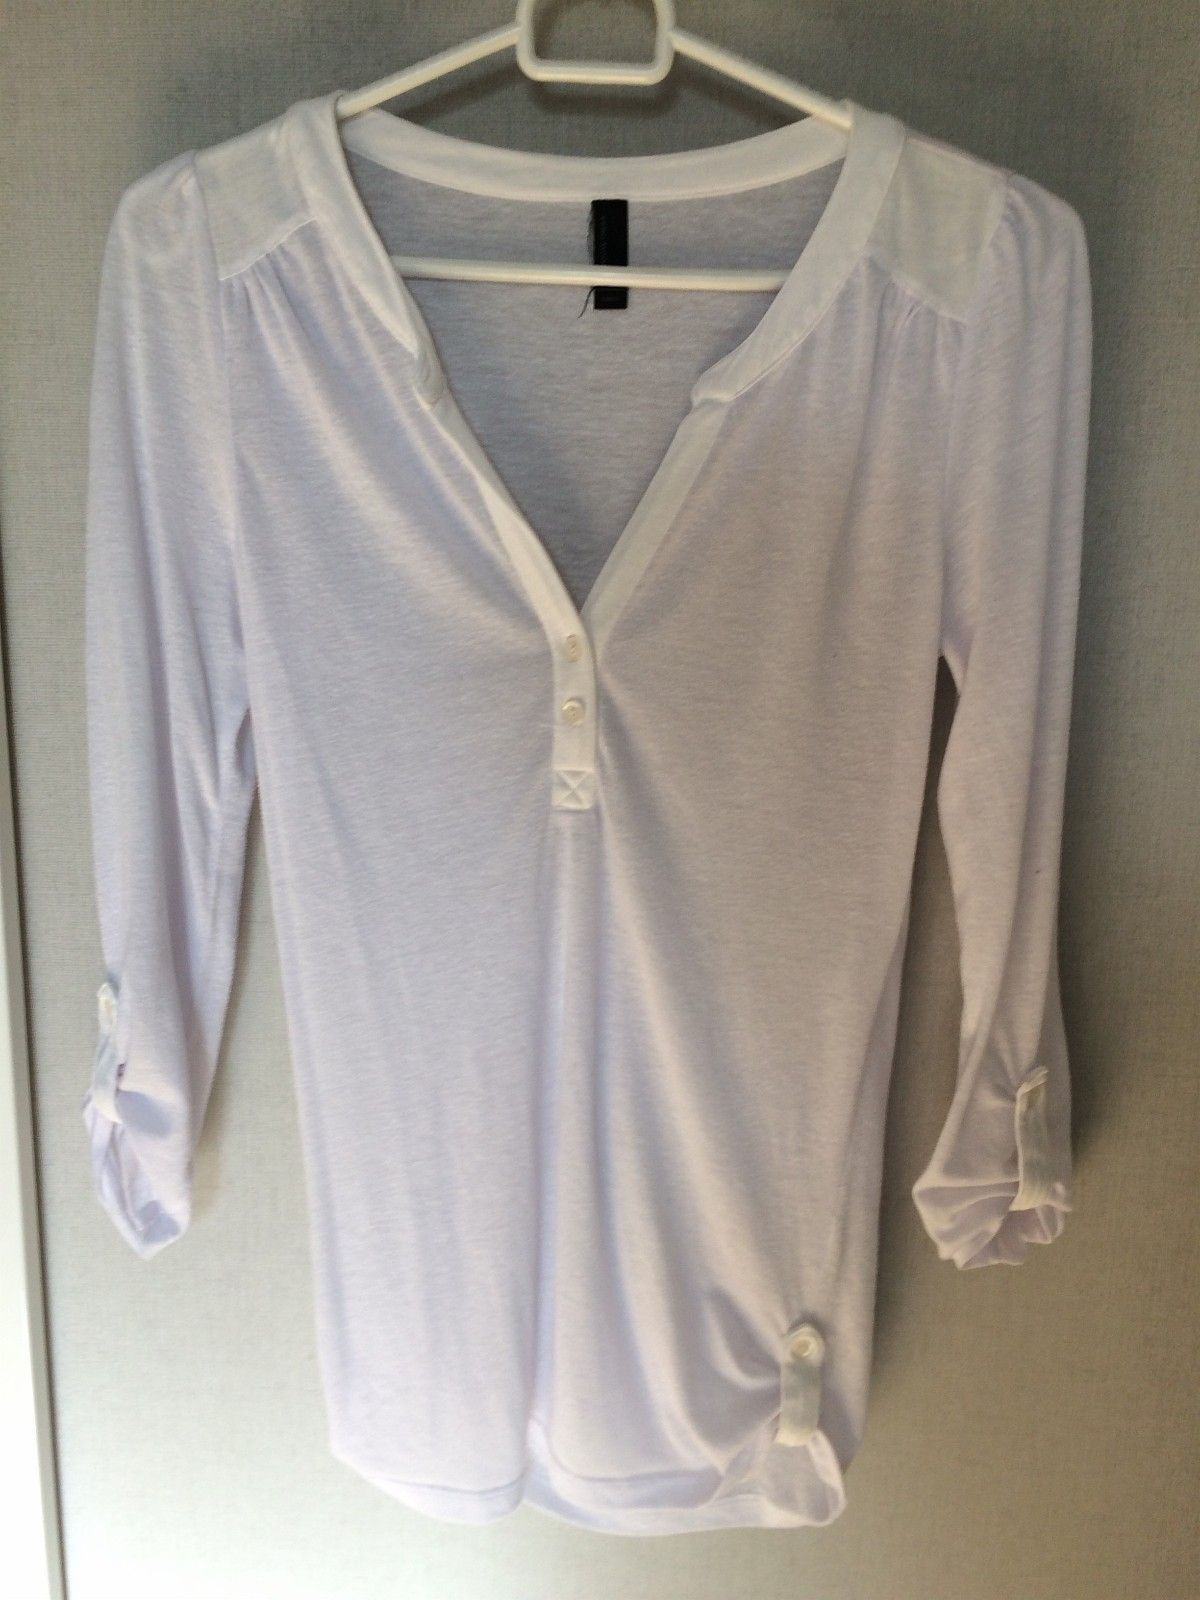 Shirt from Vera moda size xs - Stavanger  - Shirt from Vera moda size xs  We can discuss about price. I will move end of year, hence I try to sell all things what I not longer need. If you like more peace of mine- we can discuss about addition discount. - Stavanger